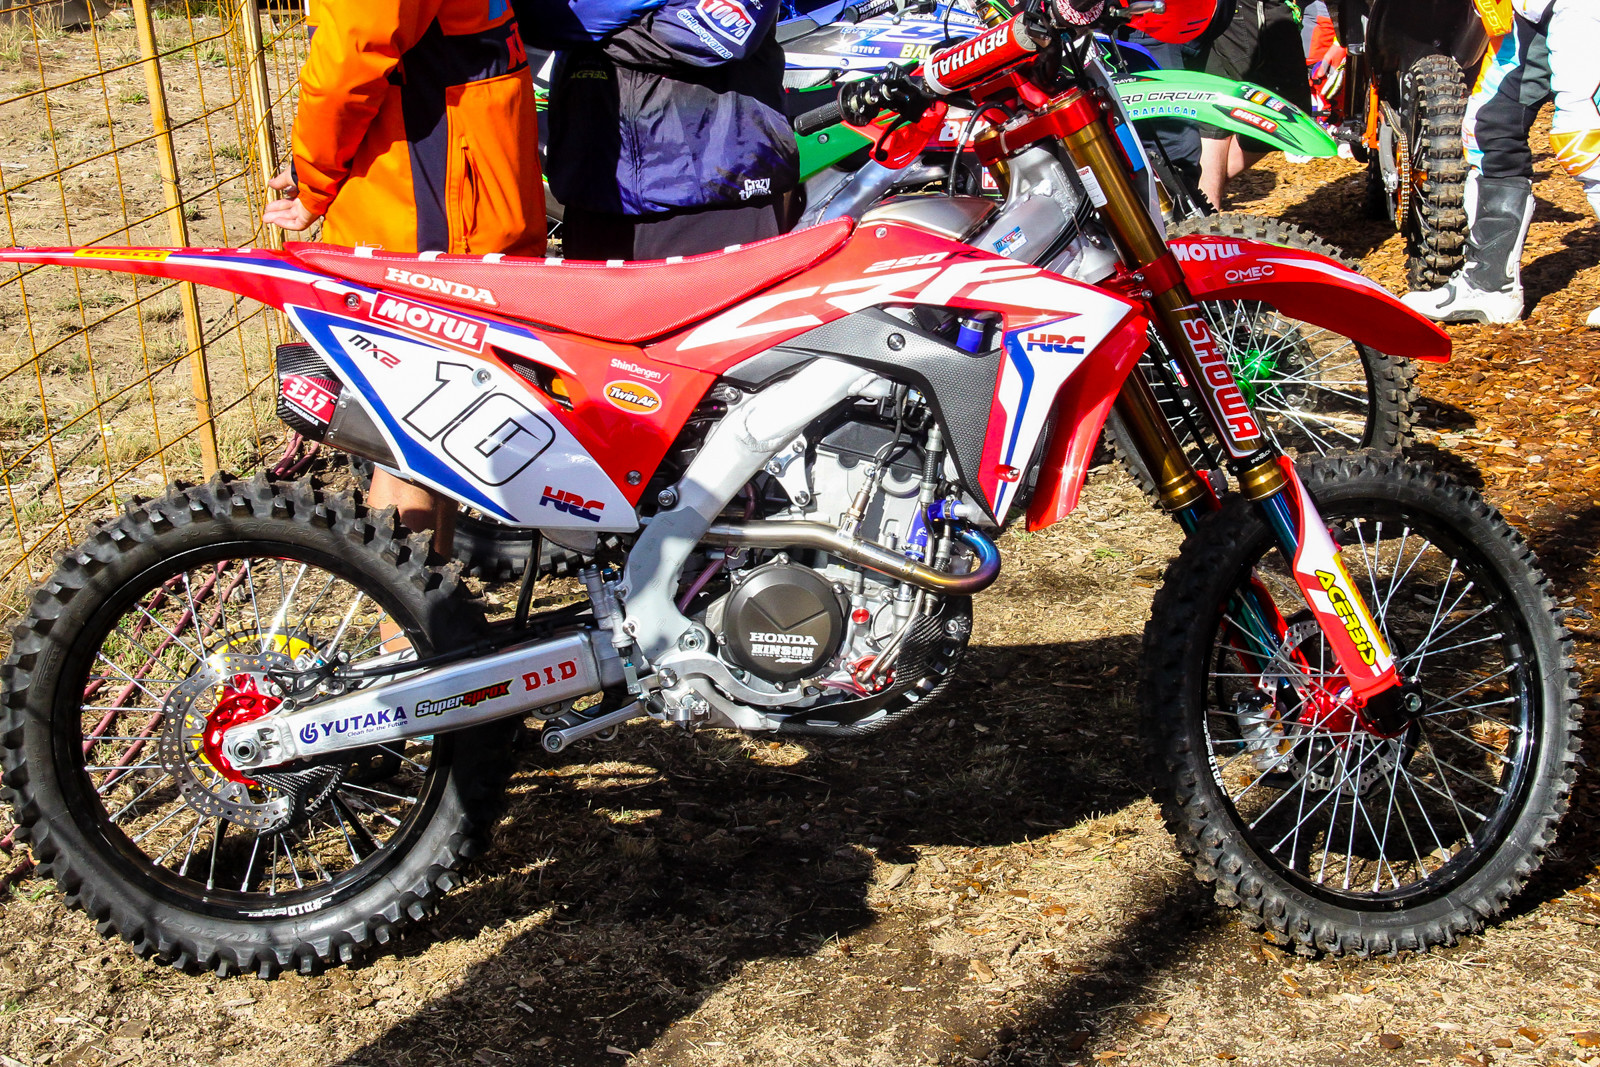 Calvin Vlaanderen's CRF250RW is a fun one to drool over. Oddly enough, it's equipped with Showa's SFF TAC fork (air forks, not spring).